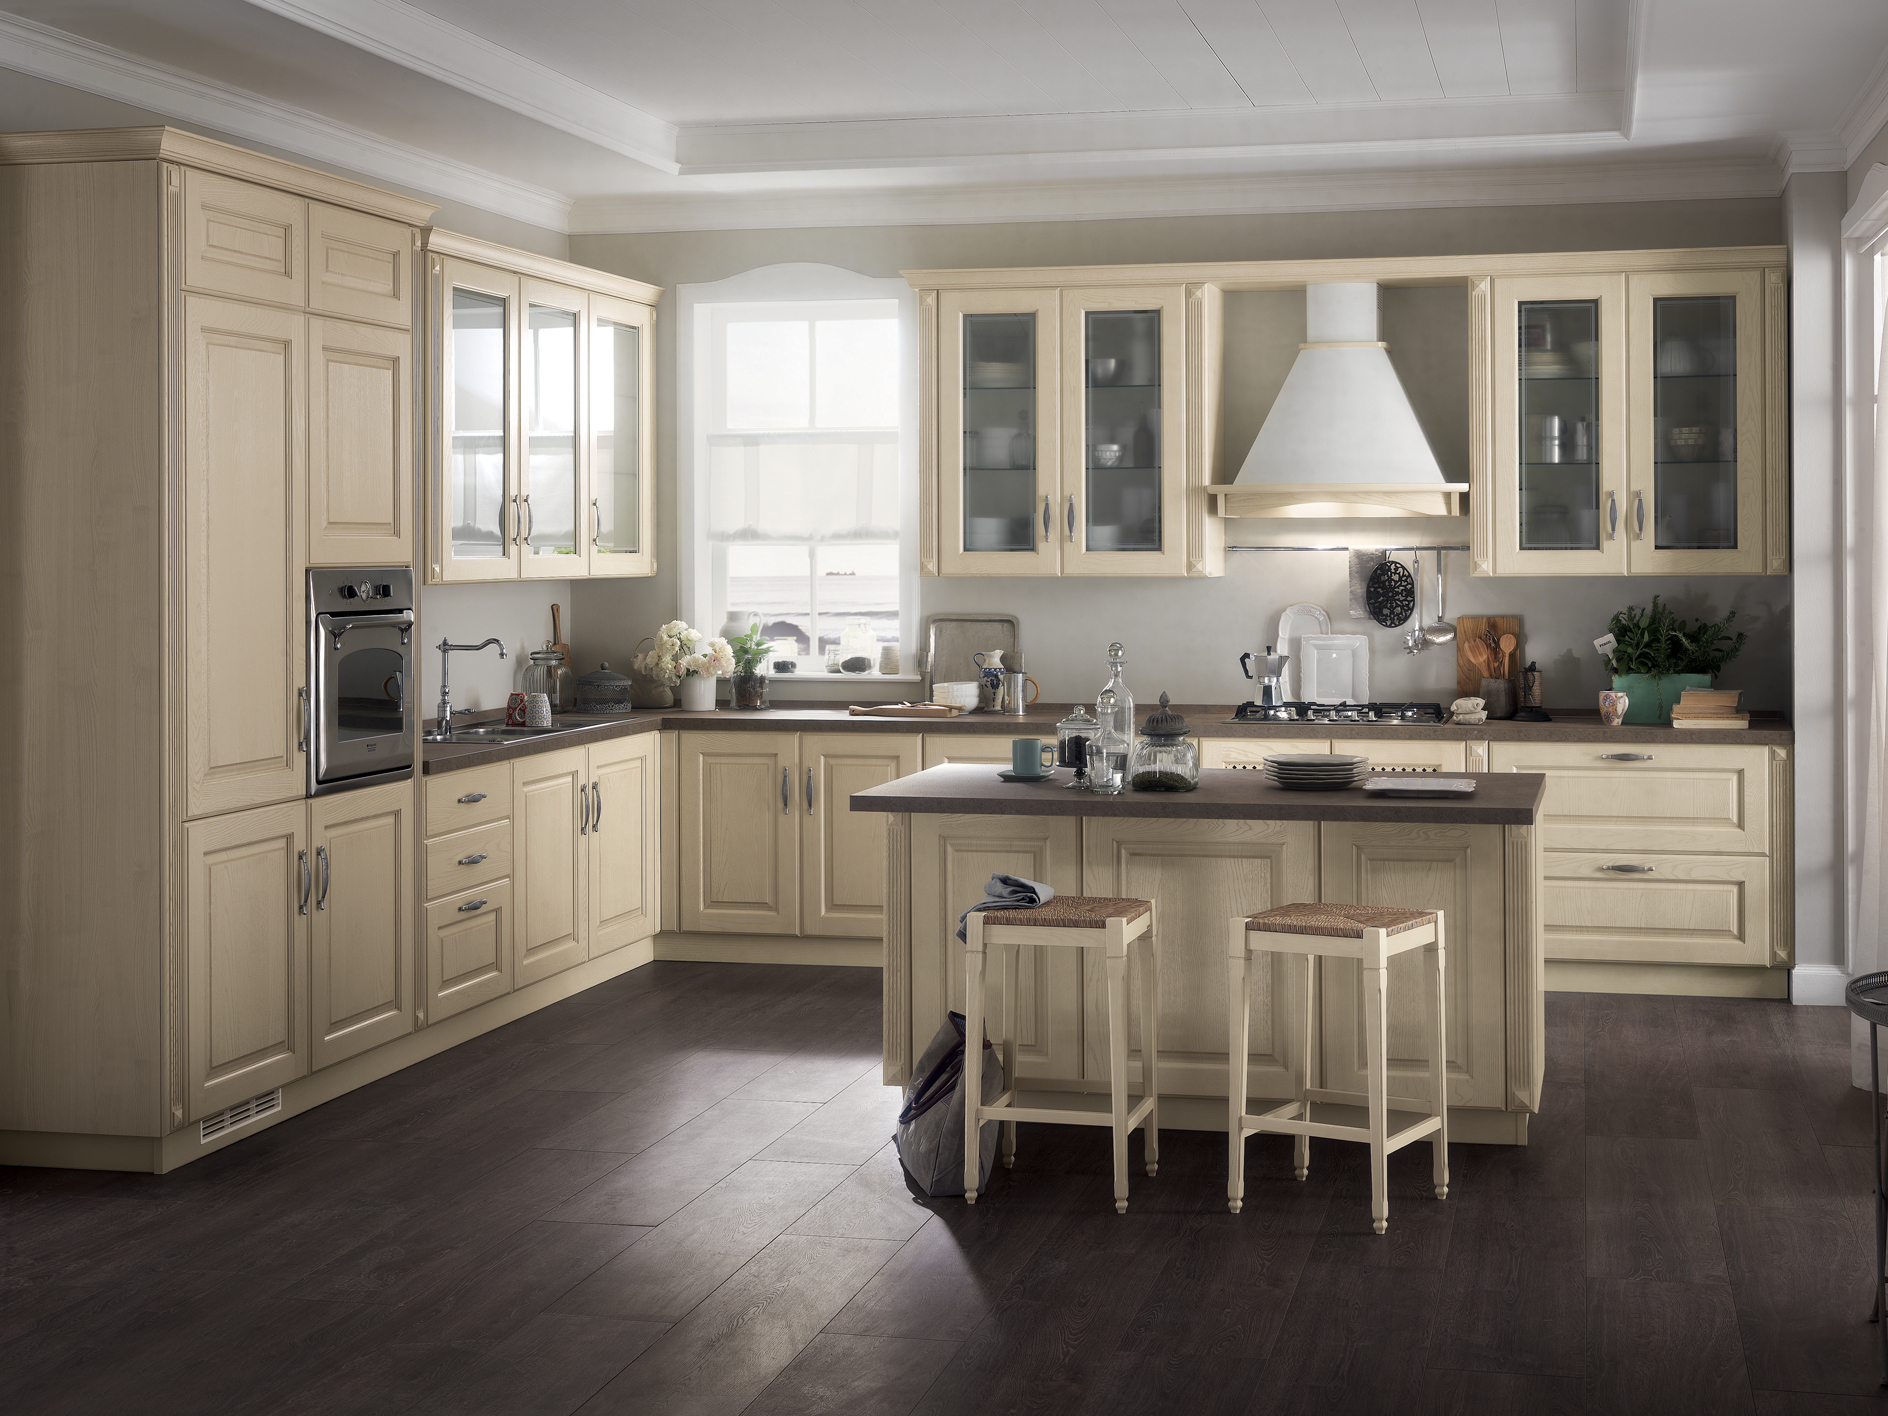 Fitted kitchen HIGHLAND Scavolini Easy Line By Scavolini